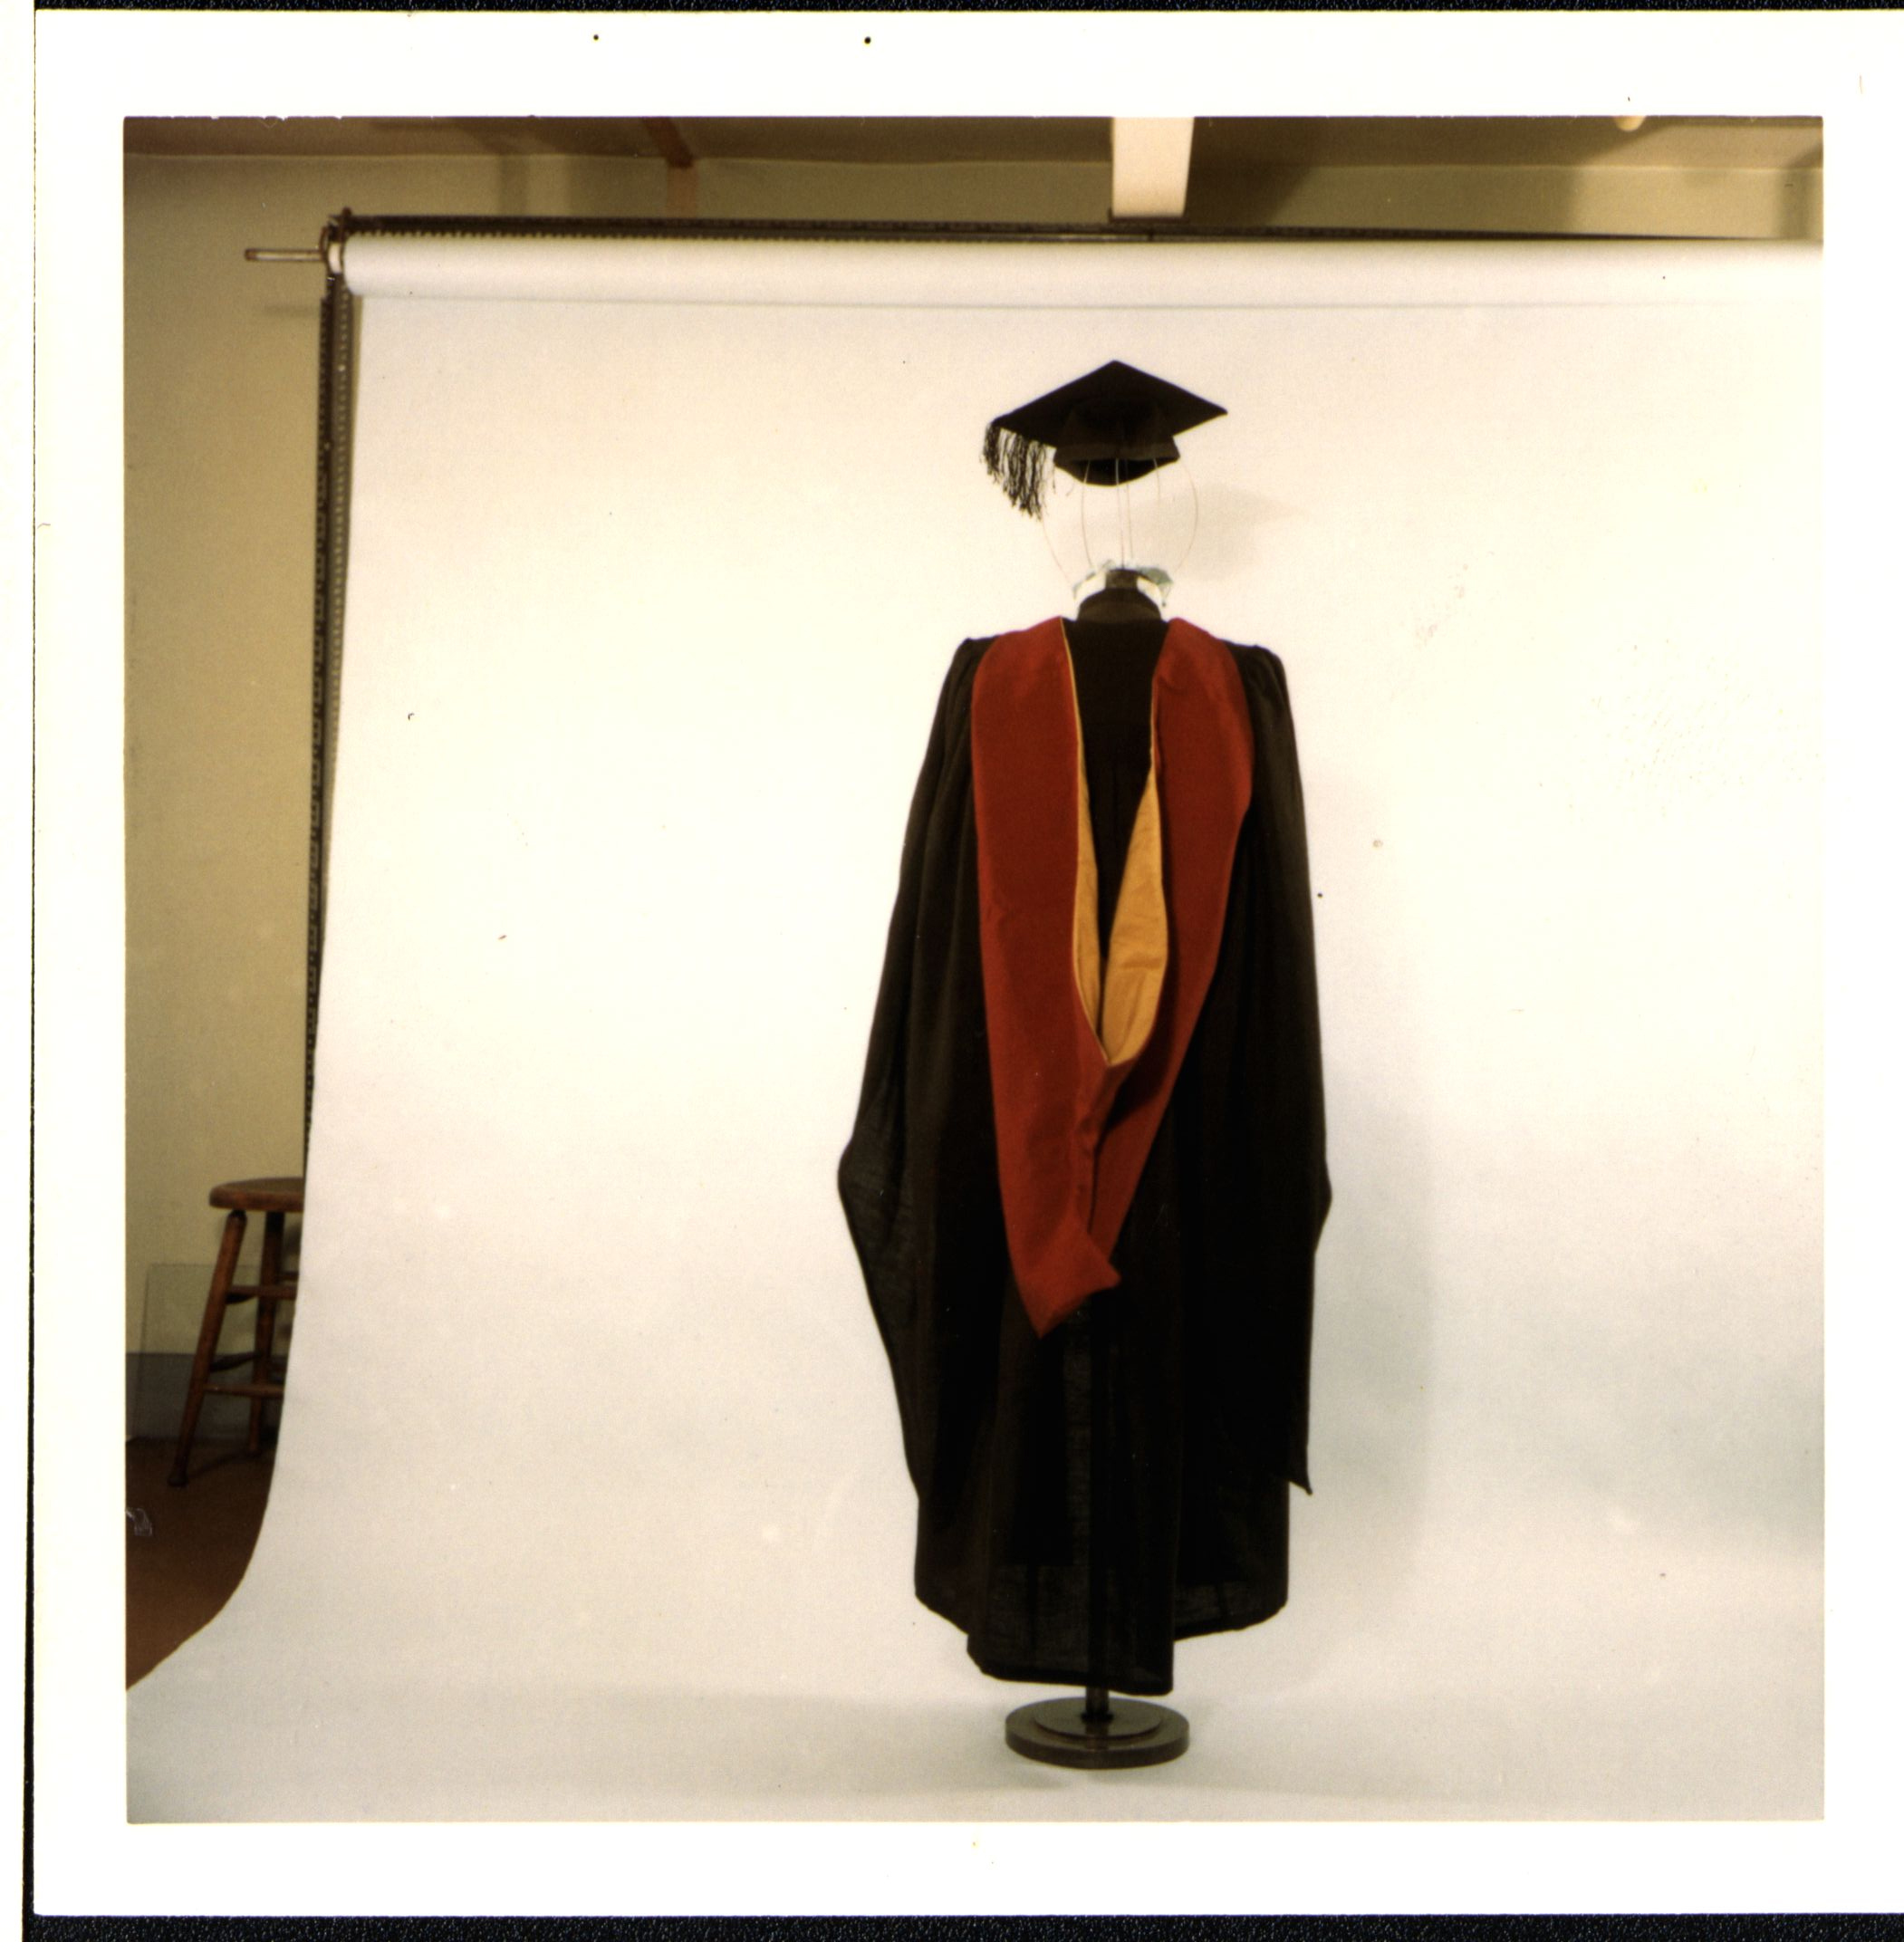 City Bachelor graduation robes black robe with red and yellow hood, back view.